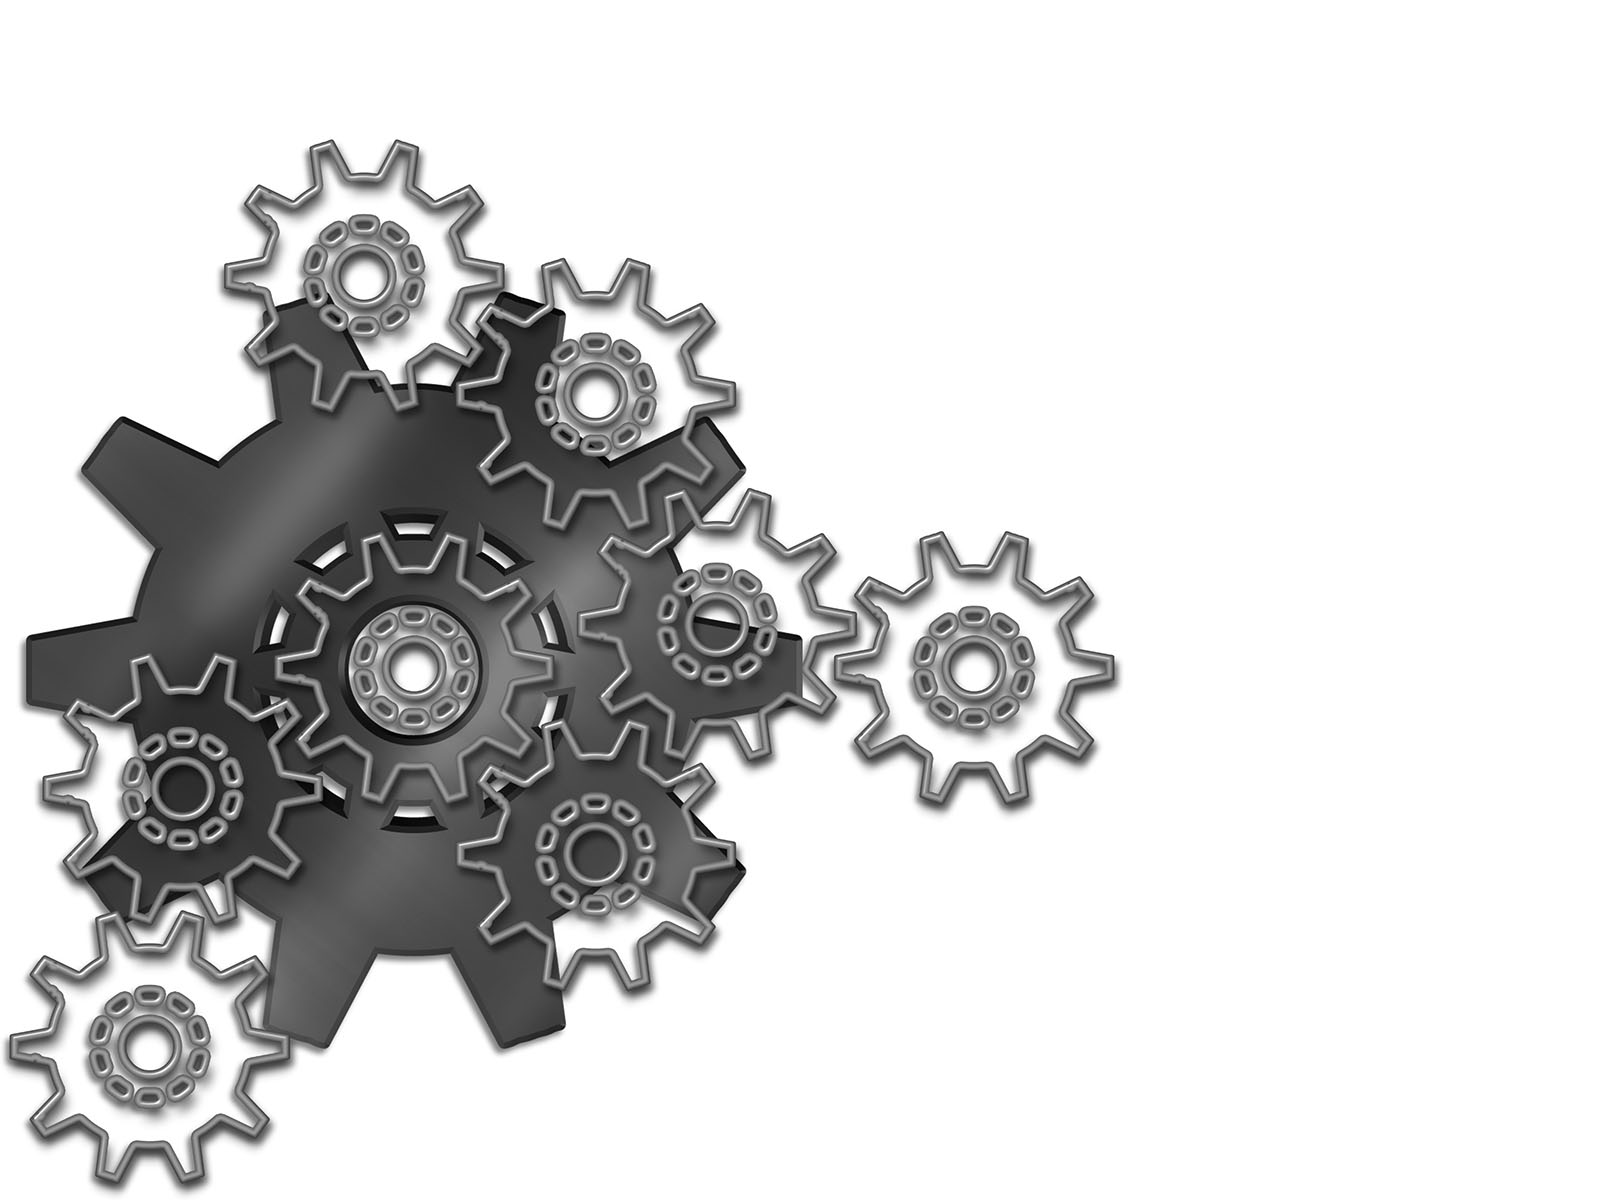 engineering gears backgrounds black tools and devices